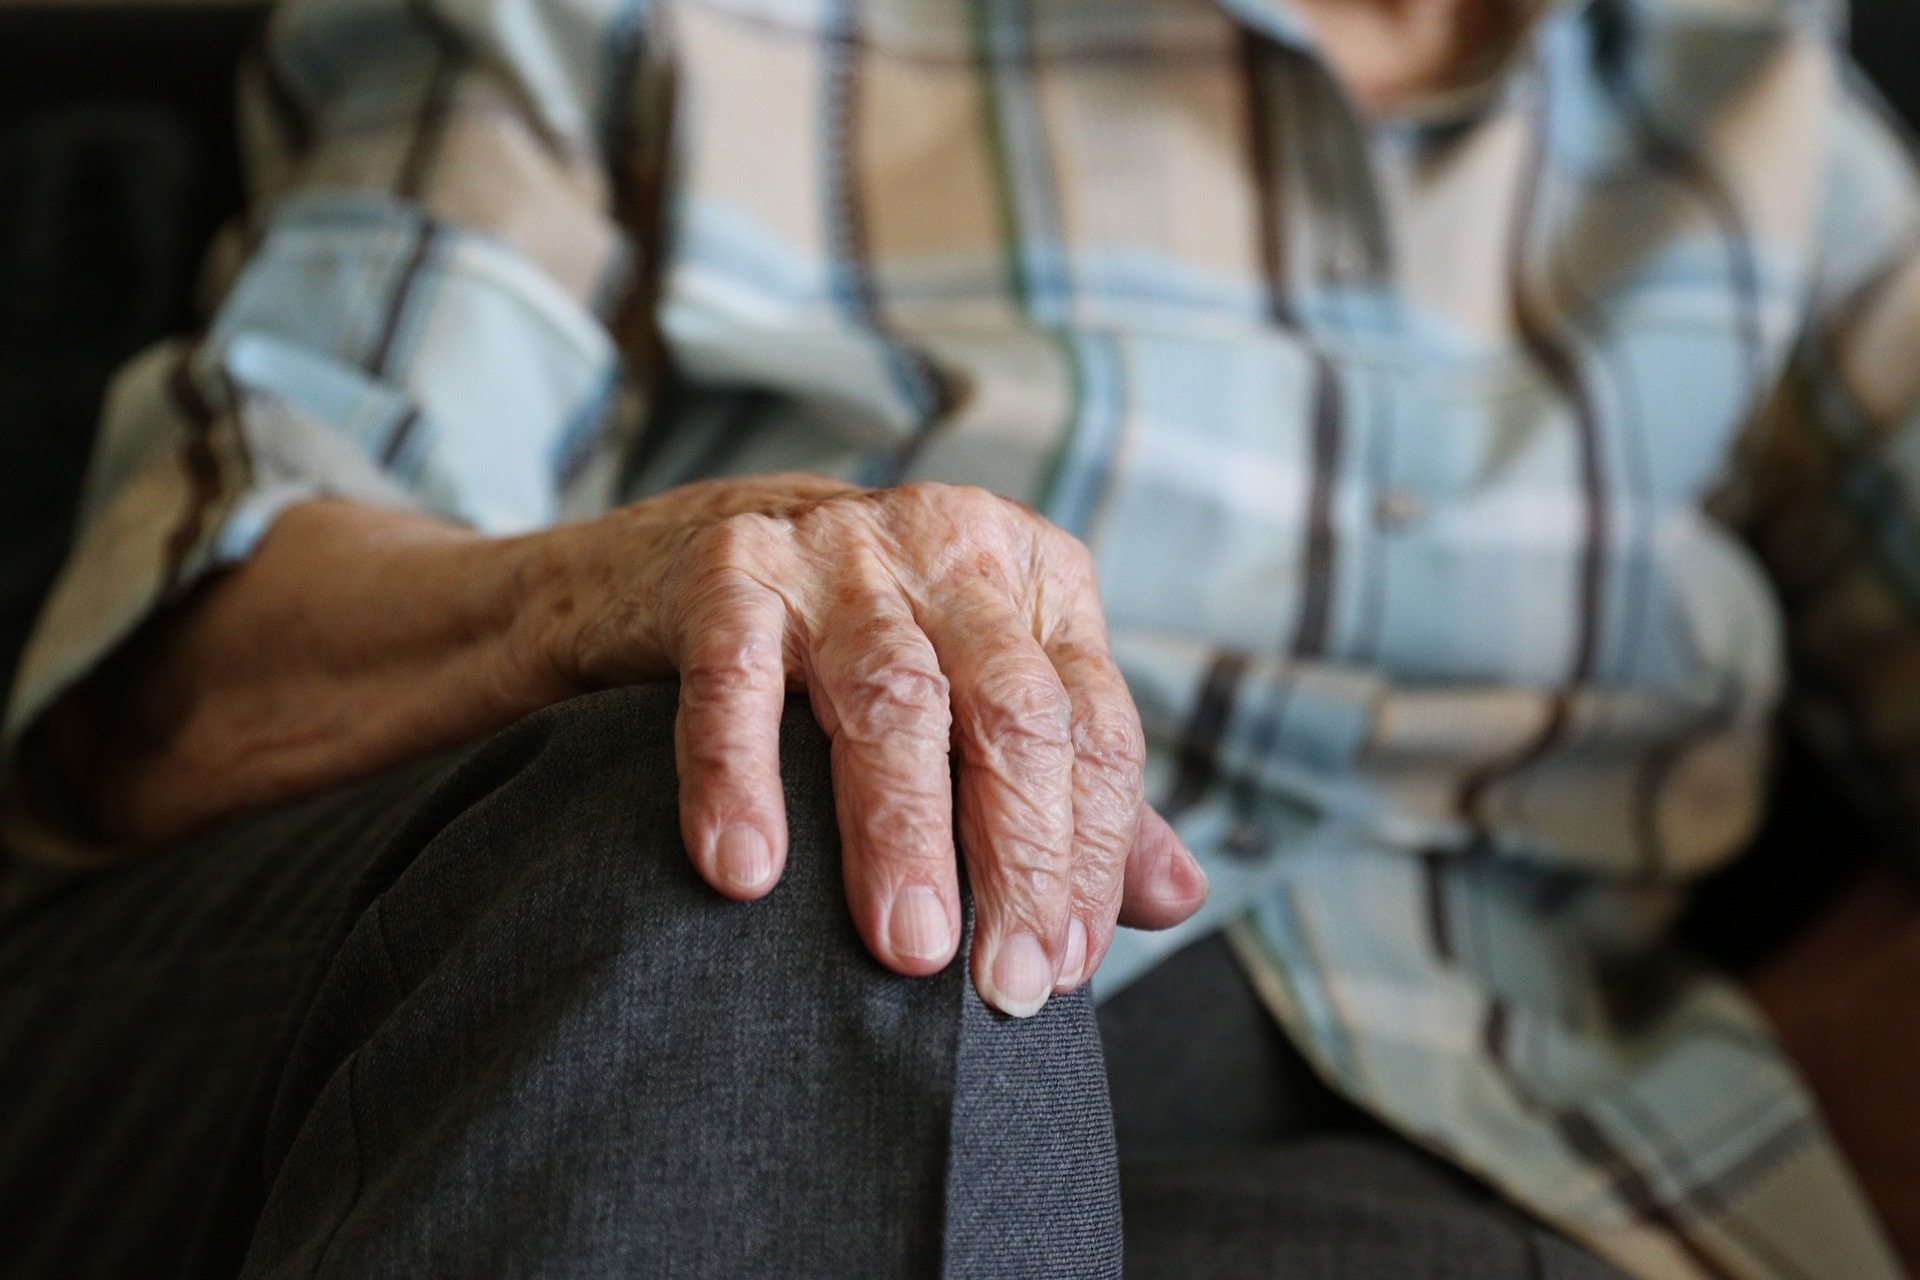 photo of an older person's hand